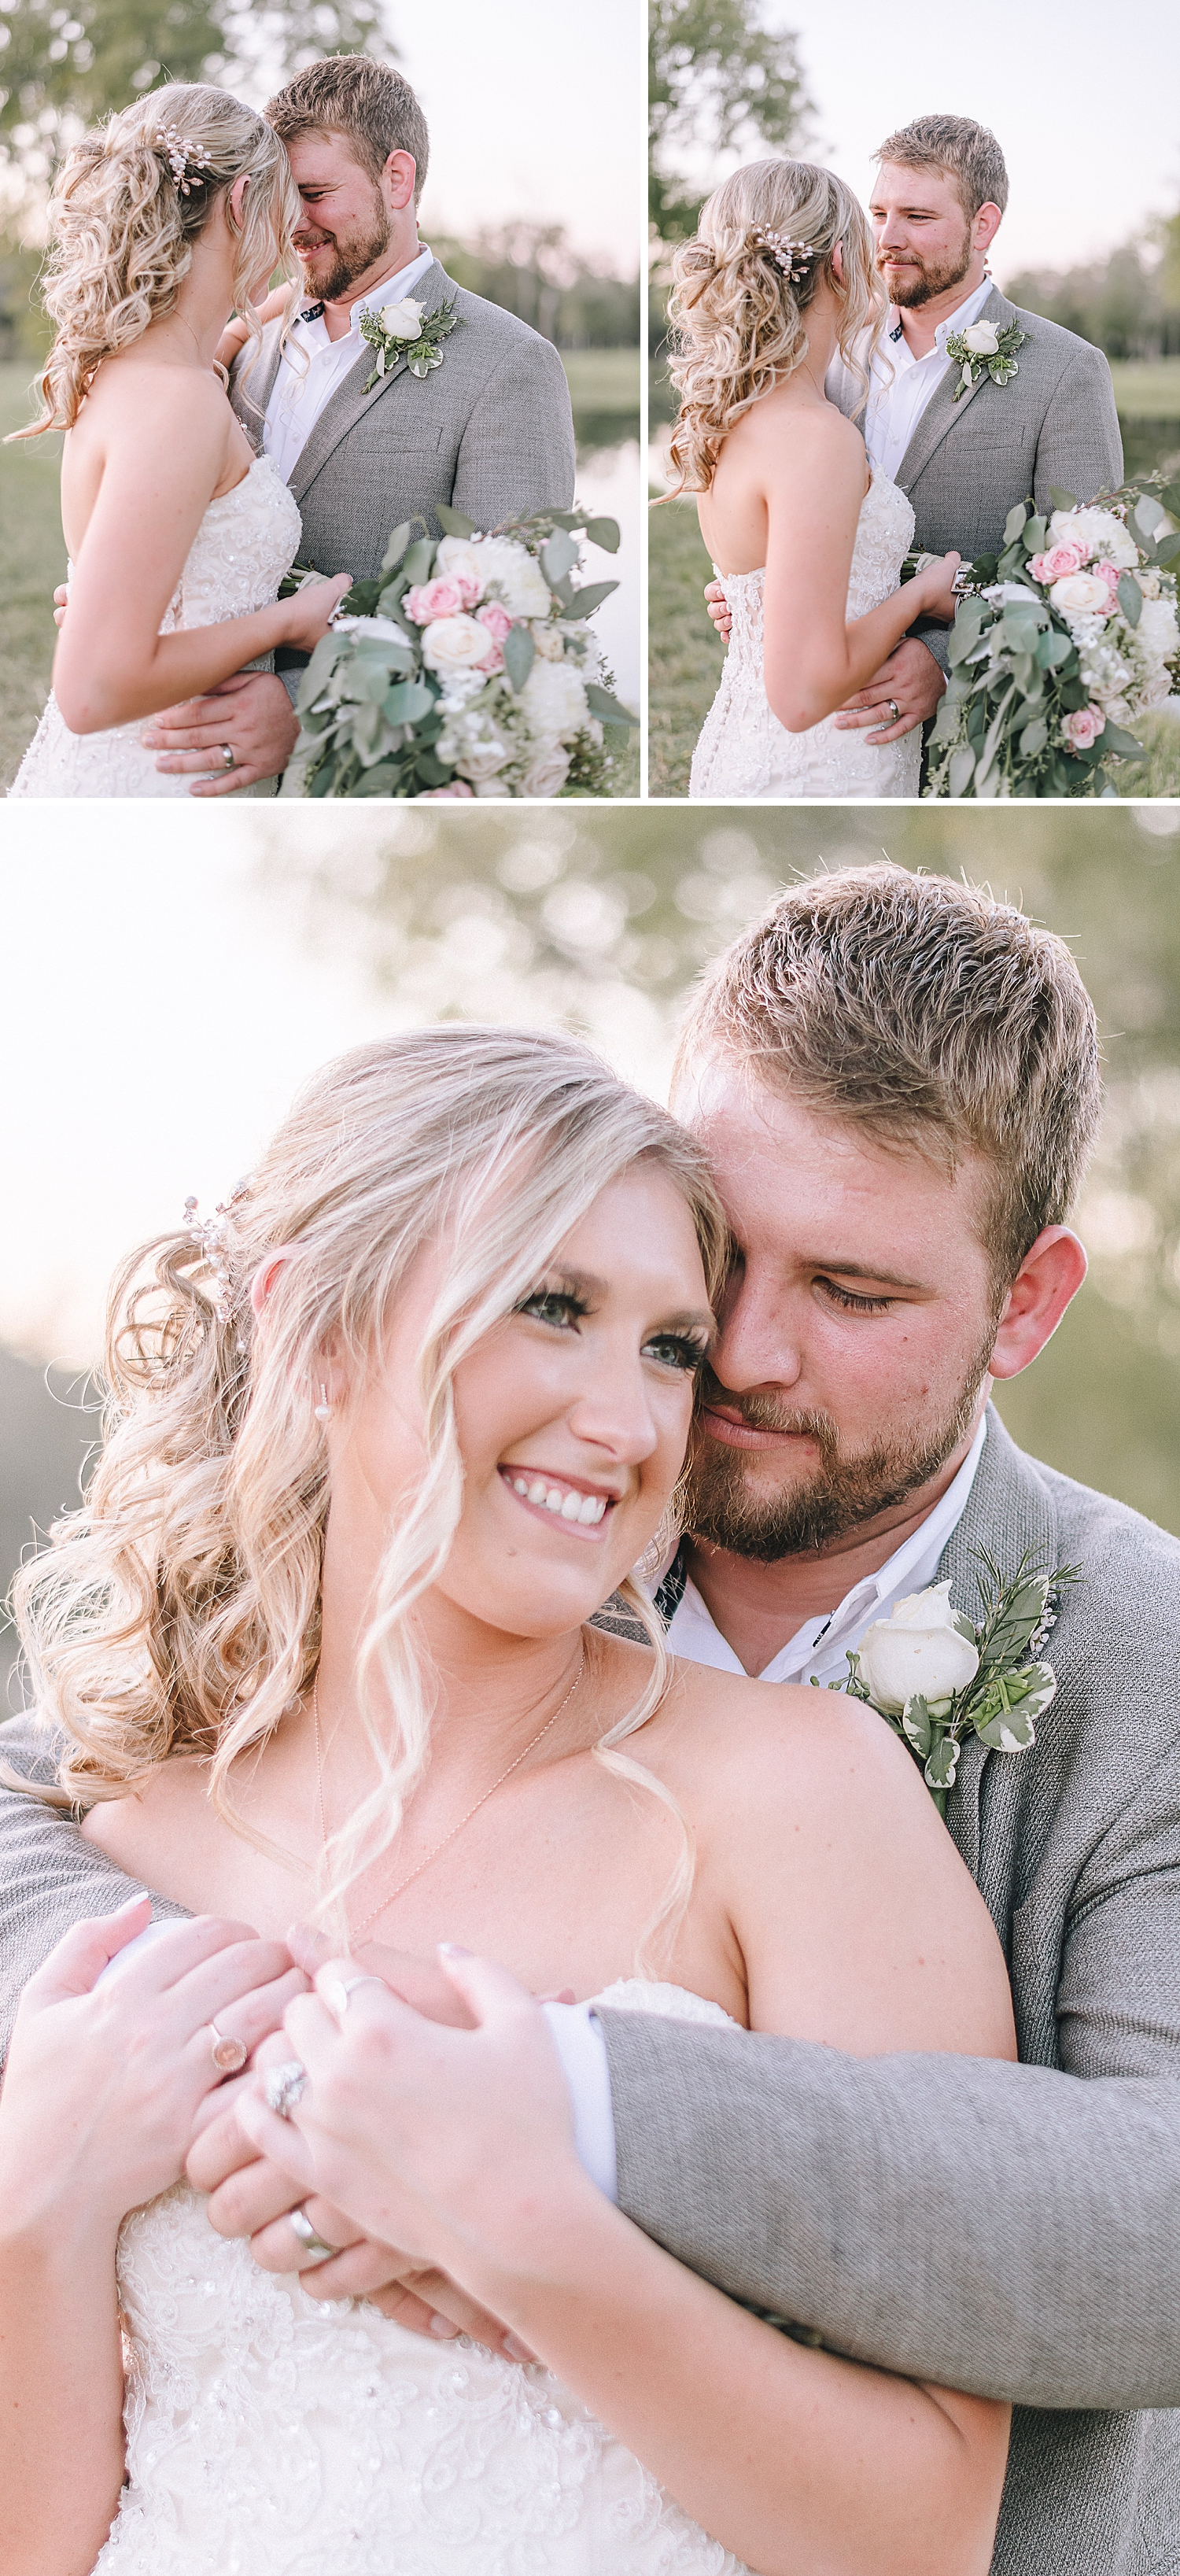 Rackler-Ranch-LaVernia-Texas-Wedding-Carly-Barton-Photography_0095.jpg